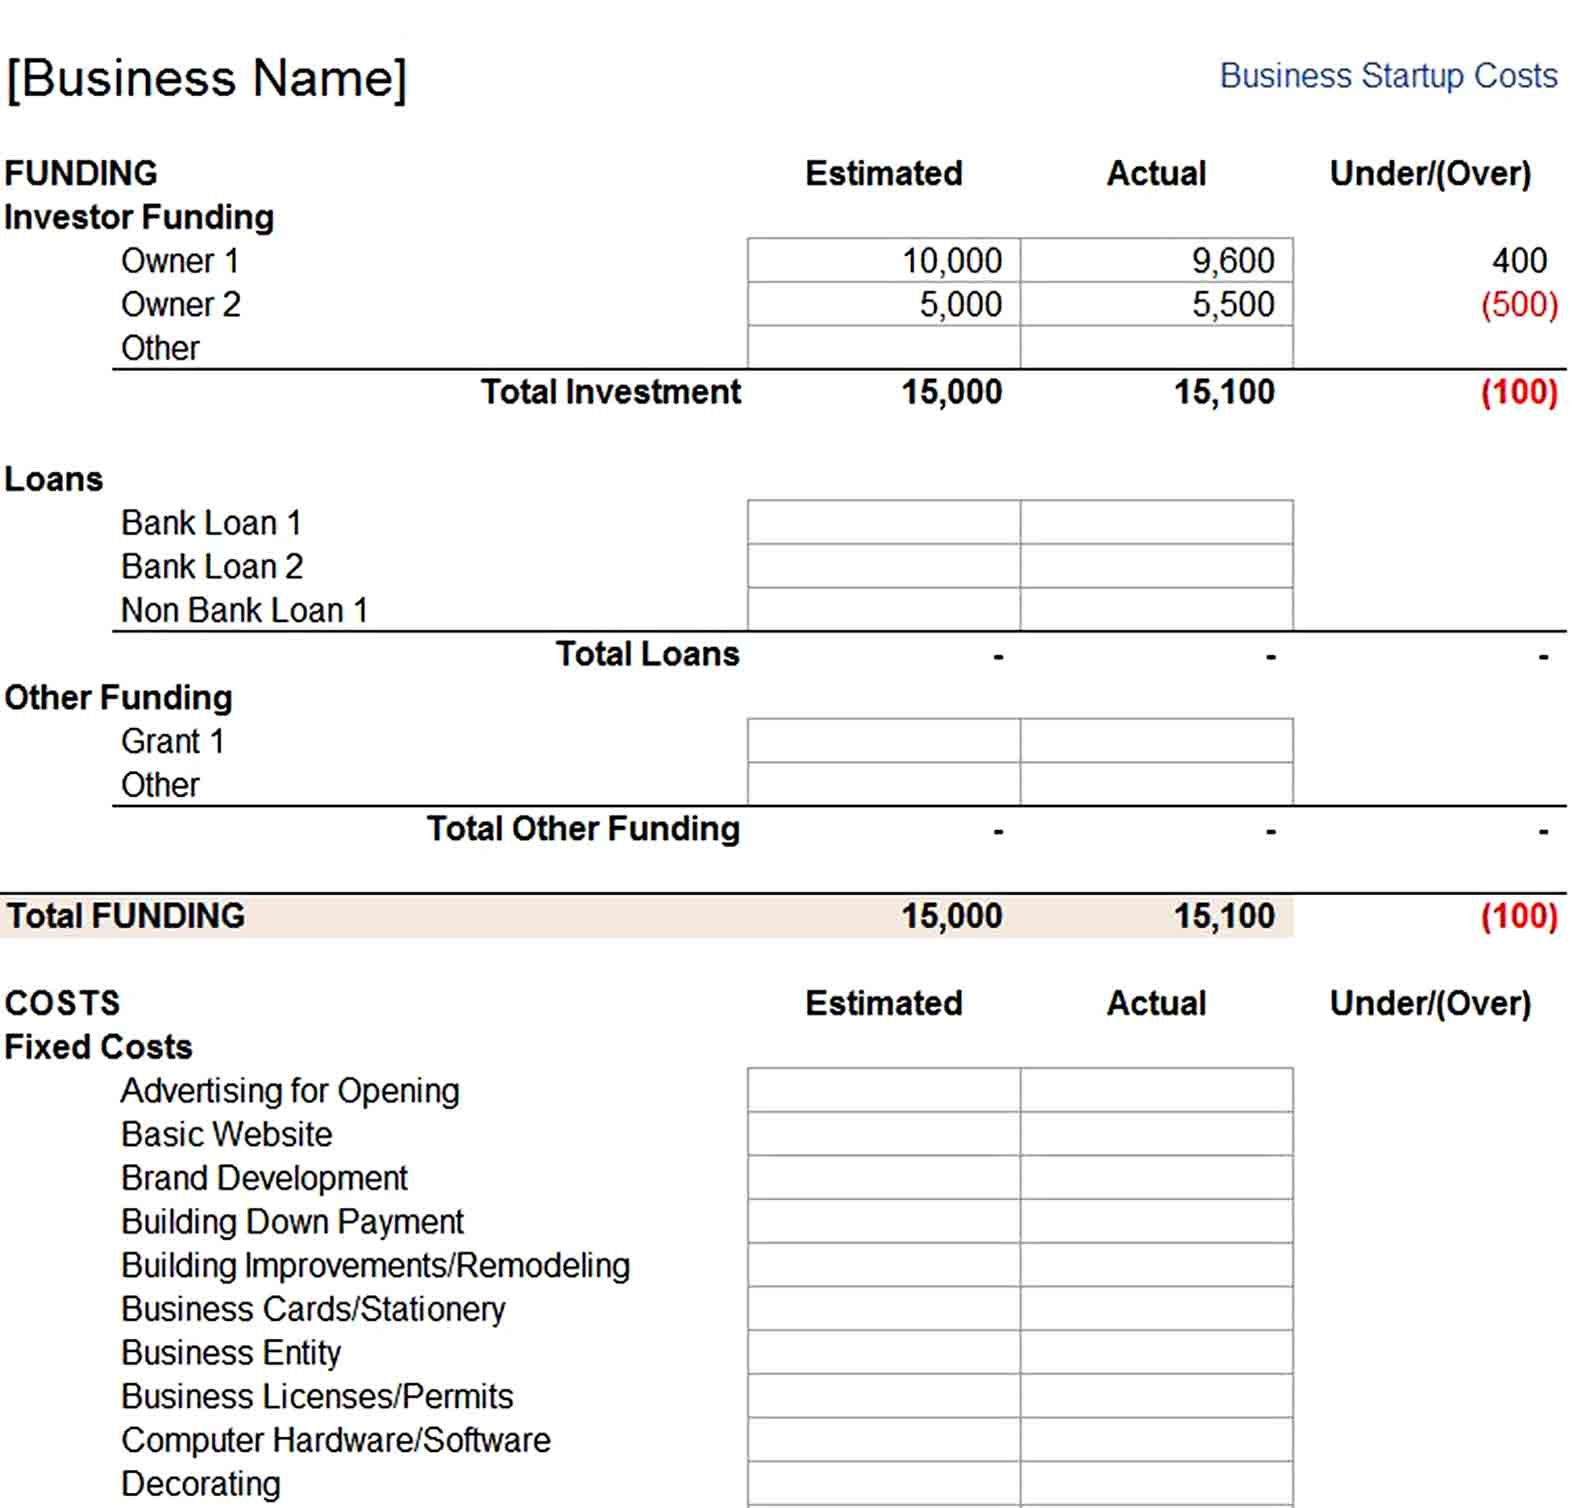 Business Startup Costs Template Start Up Business Start Up Business Plan Template Business plan startup costs template